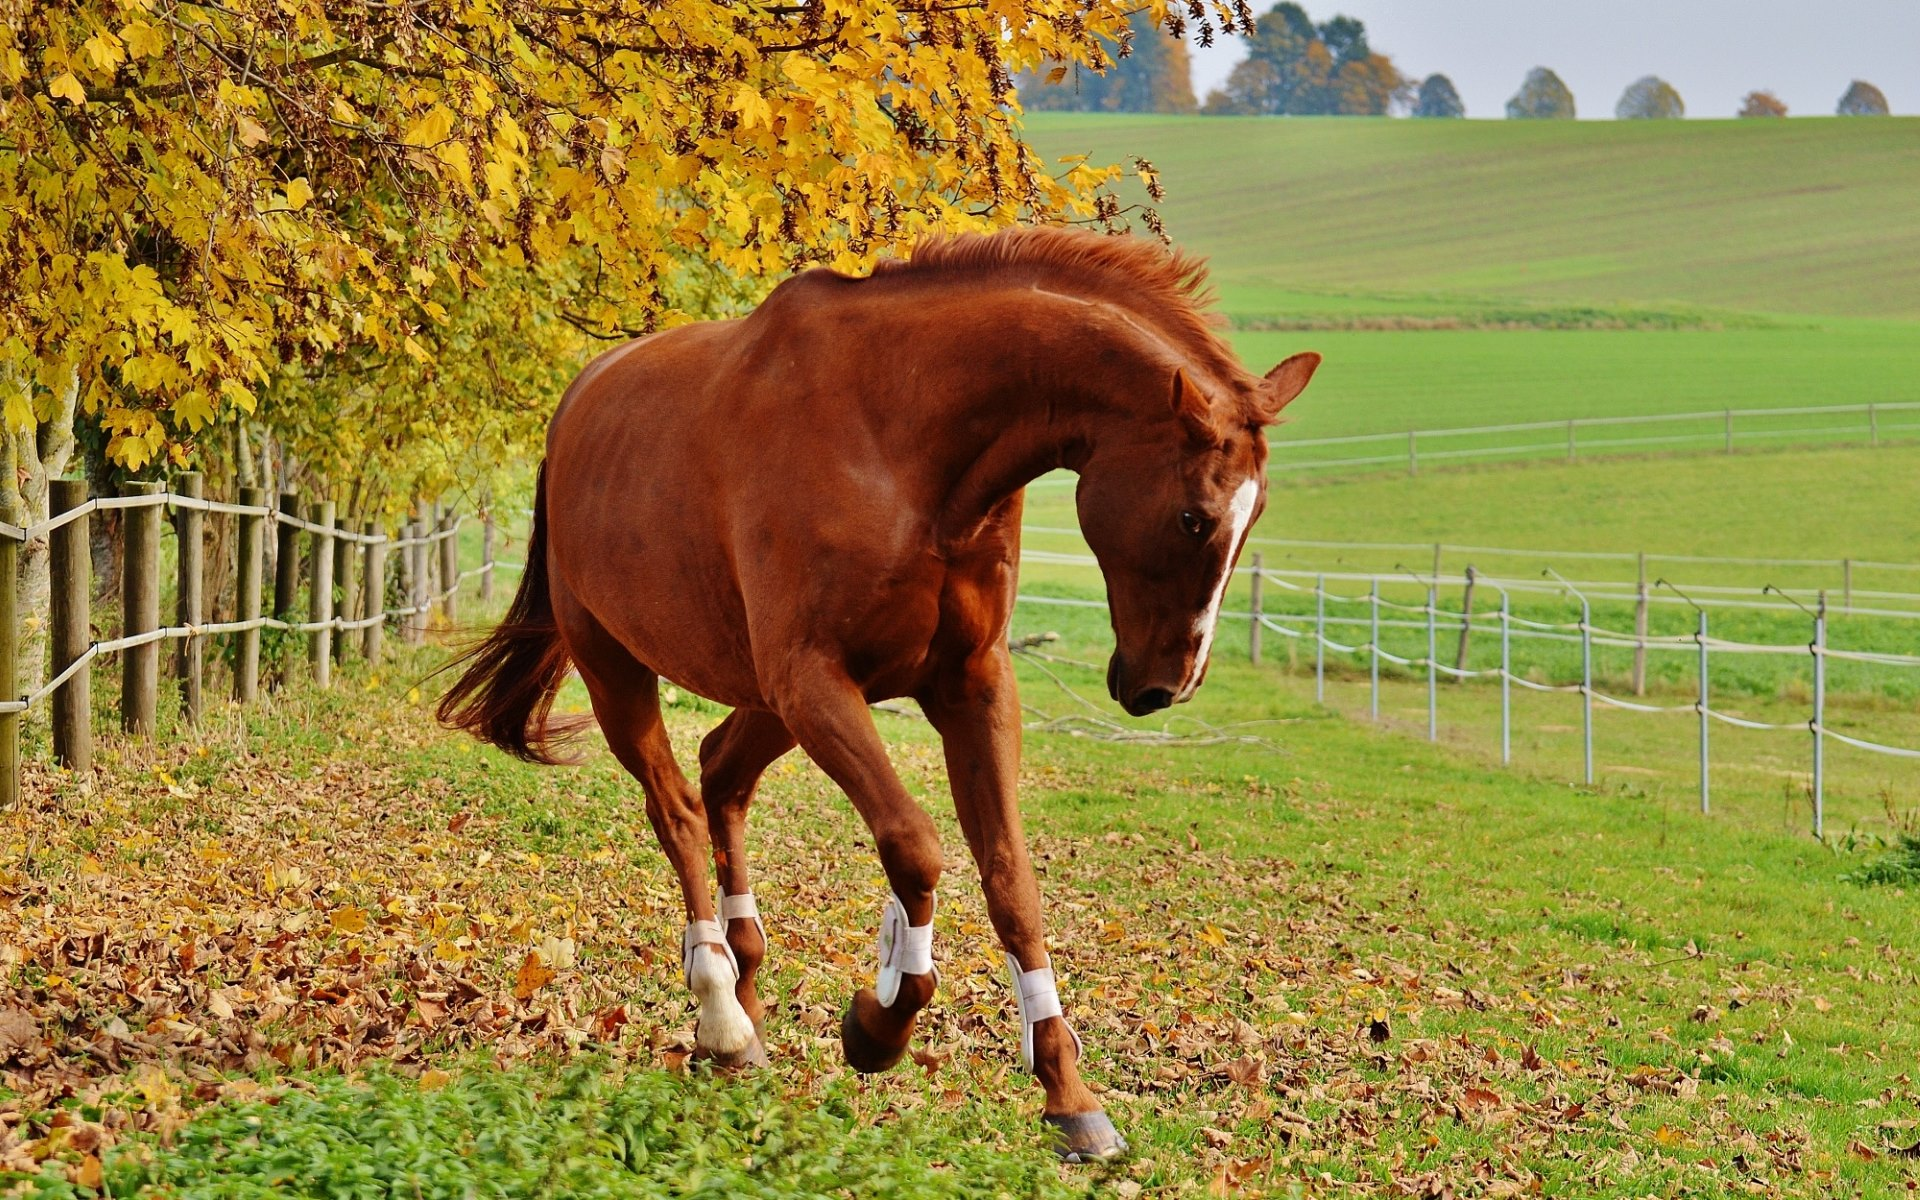 Liver Chestnut Horse Hd Wallpaper Background Image 1920x1200 Id 657217 Wallpaper Abyss